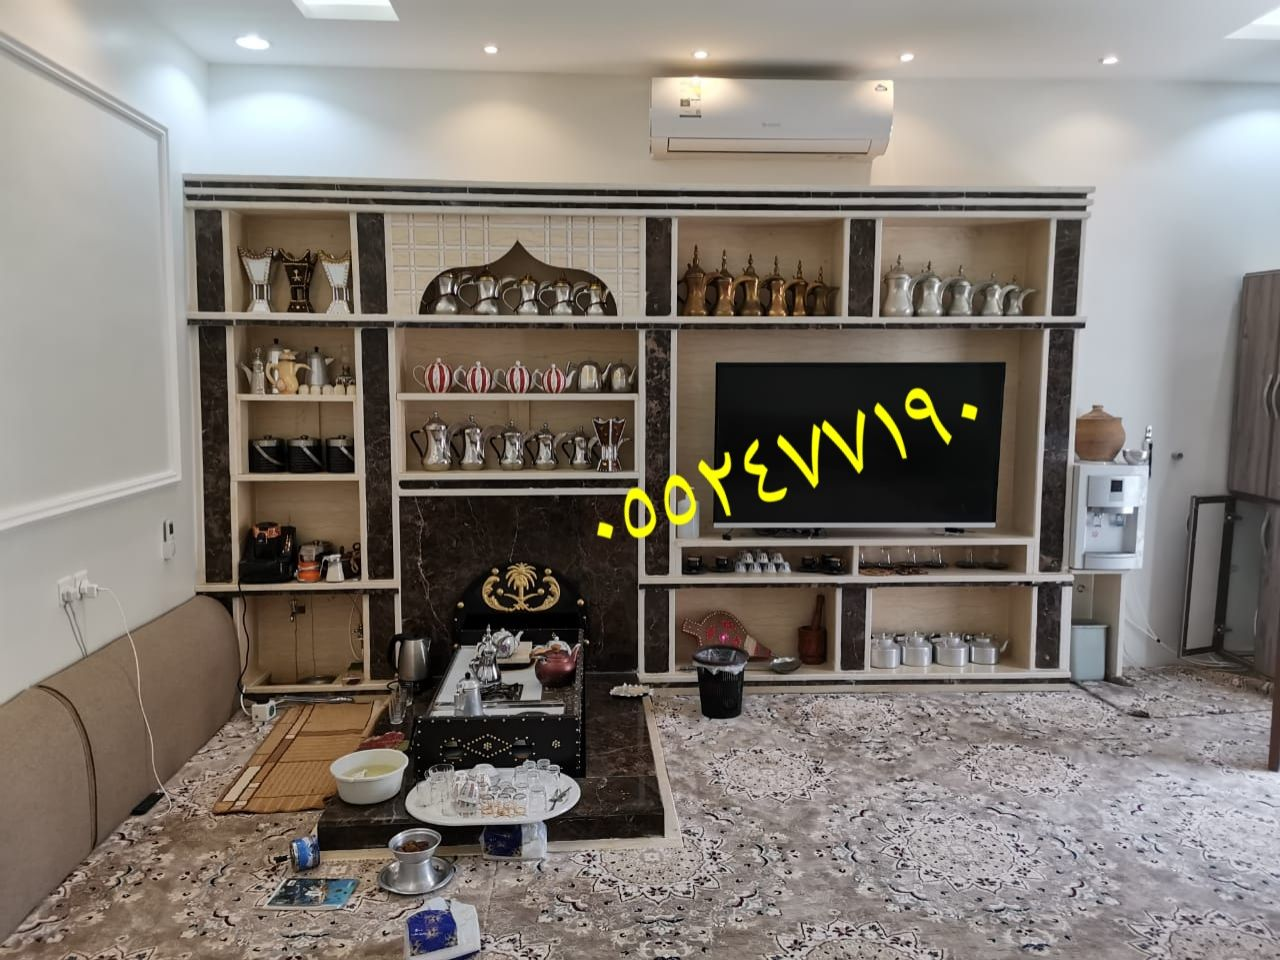 مشبات جبس مشبات رخام مشبات تراثية مشبات فخمه مشبات خارجيه مشبات زاويه مشبات طوب احمر Coffe Table Decor Home Home Decor